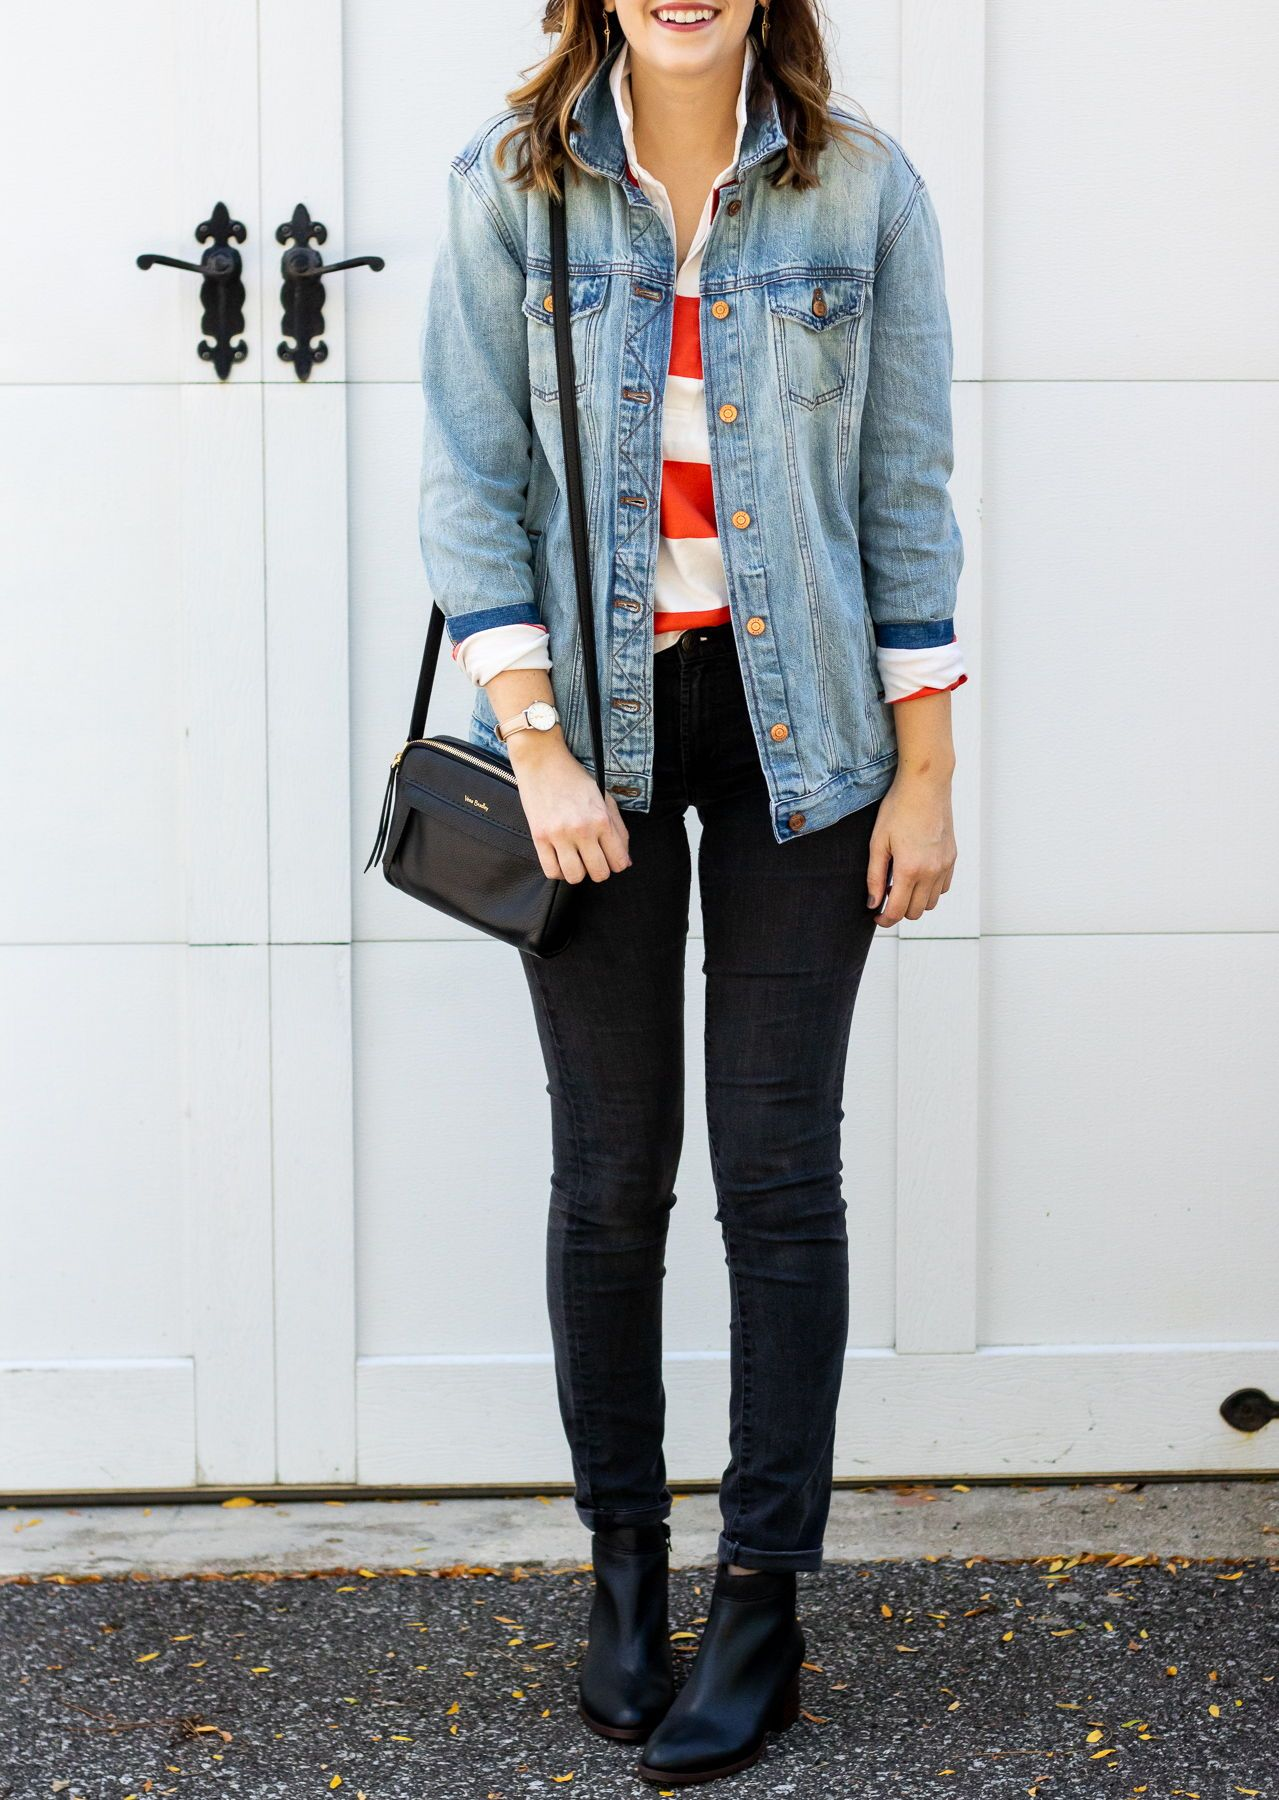 Borrowed From The Boys Girl Meets Stripes Outfits With Leggings Denim Outfit Menswear Inspired Outfit [ 1800 x 1279 Pixel ]